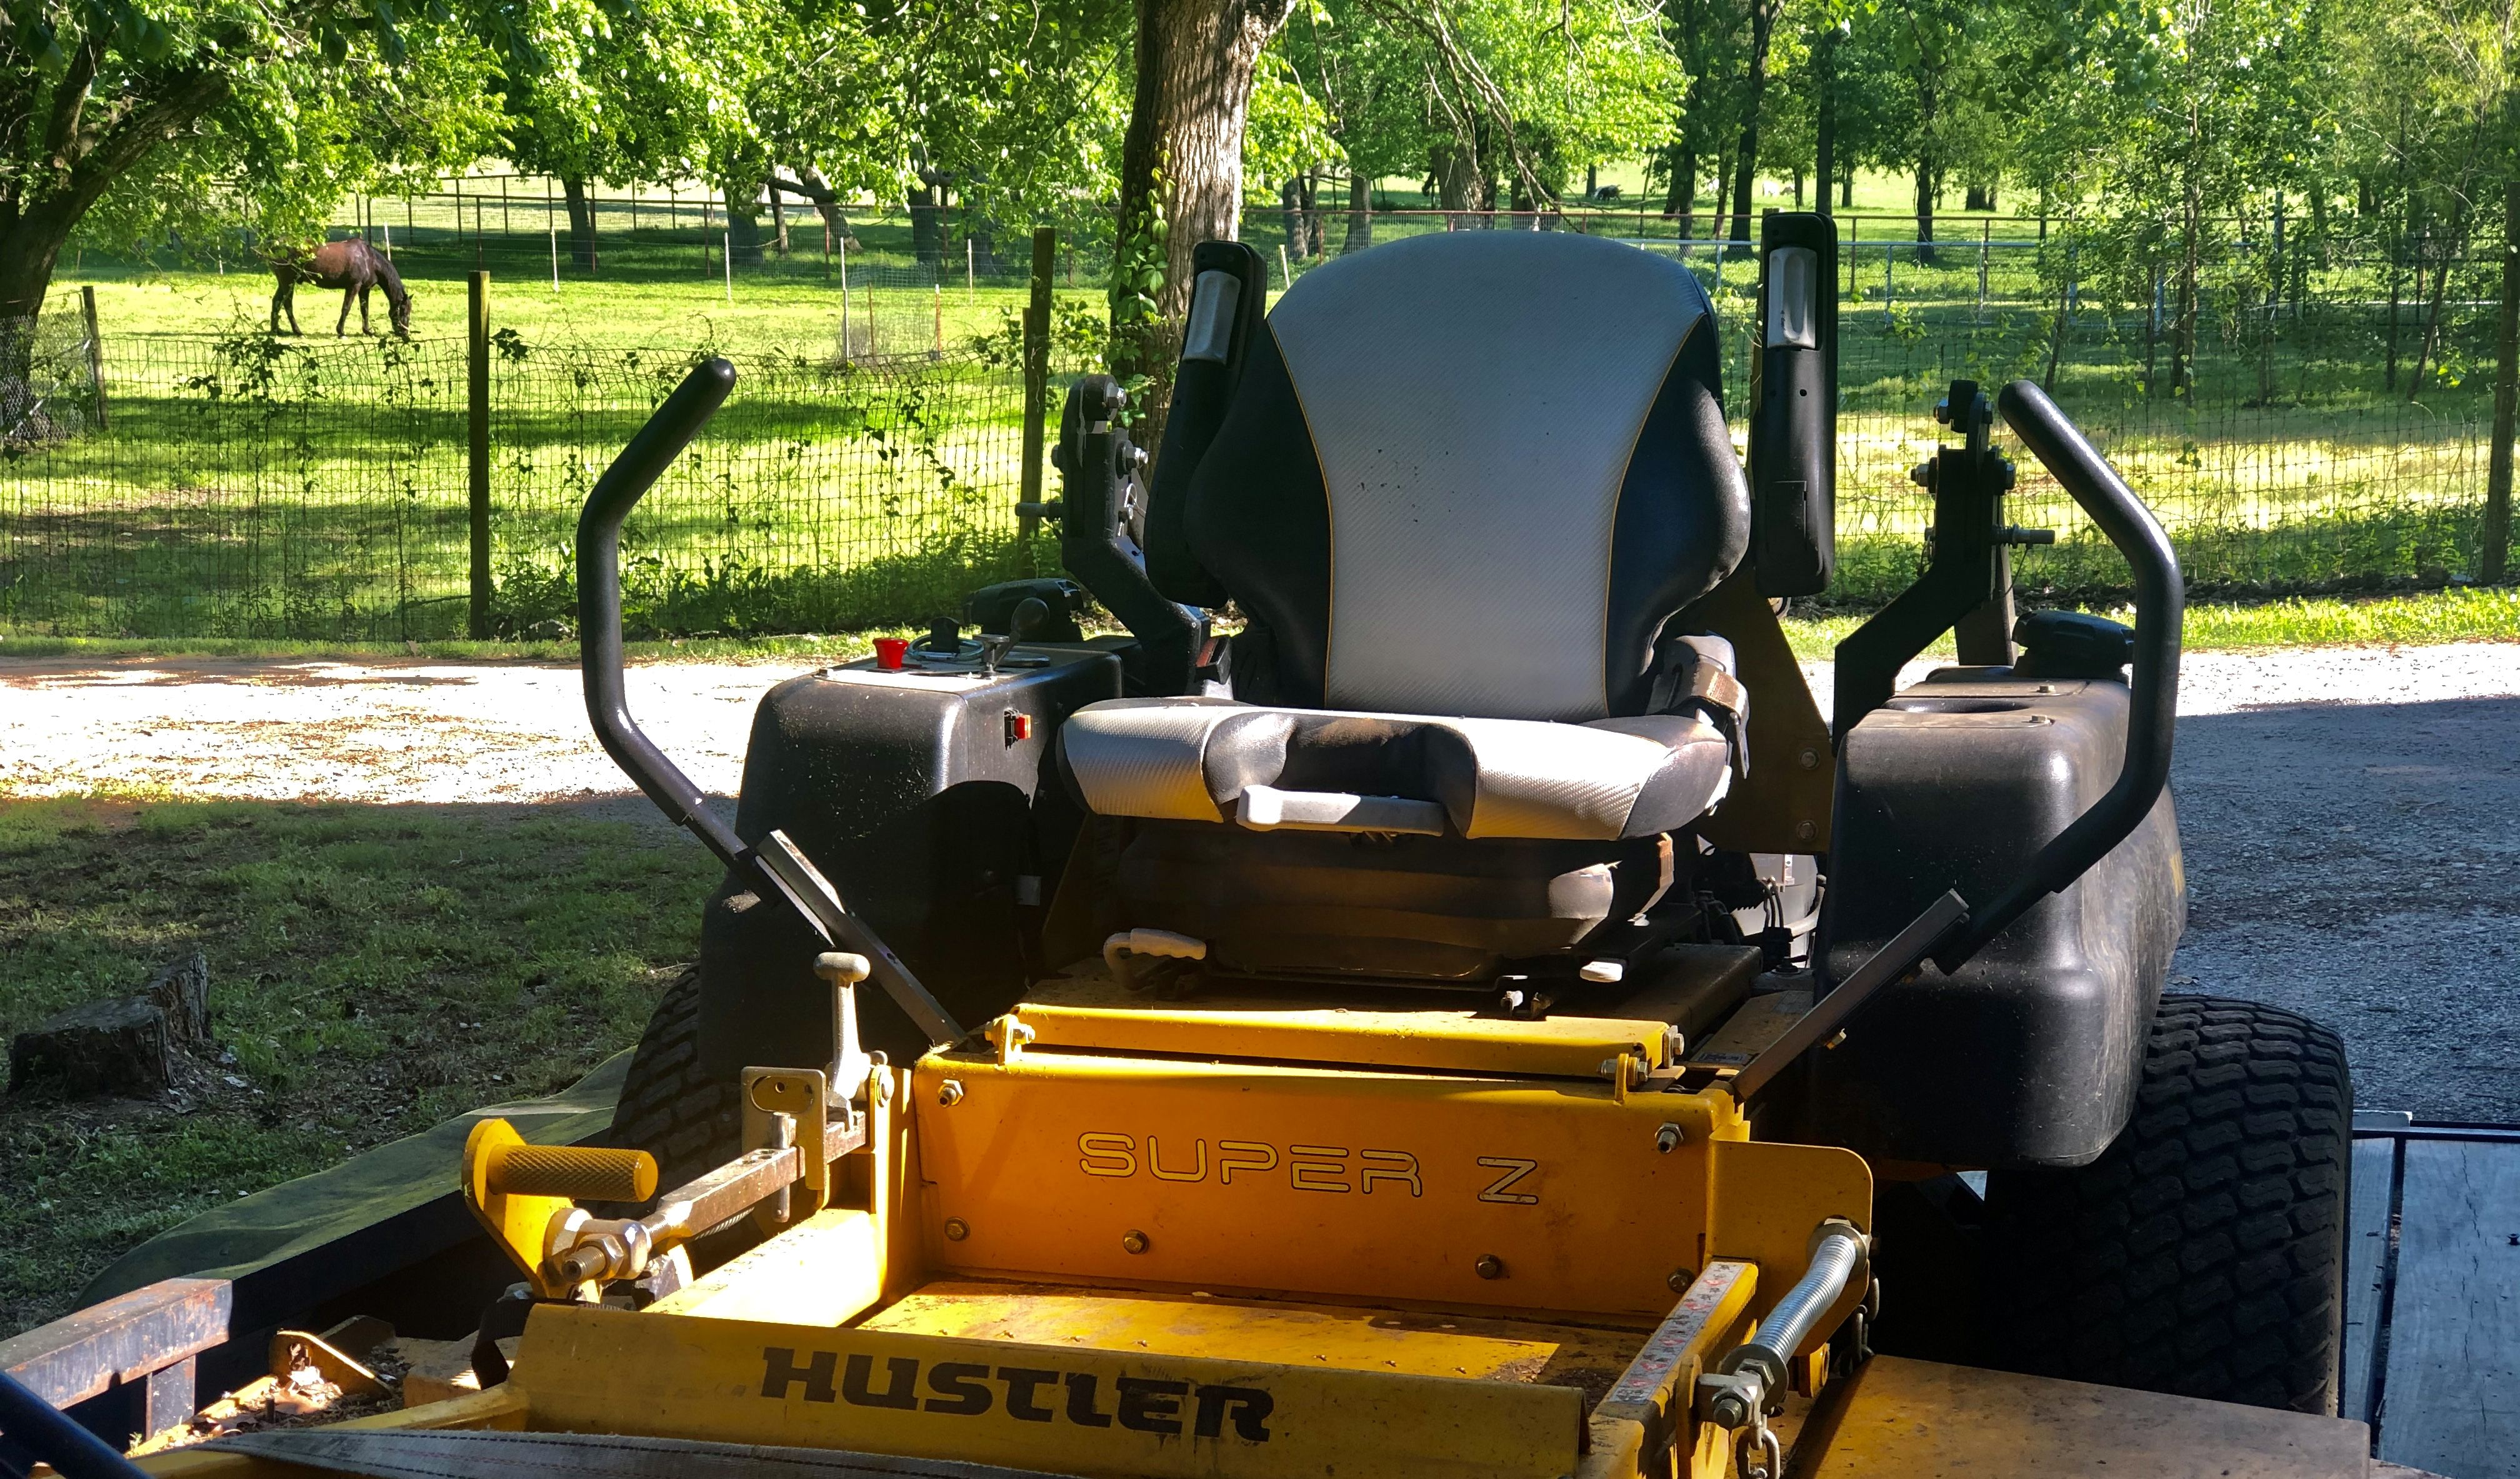 Mowing The Grass In 2020 Mower Mowing Riding Lawn Mowers